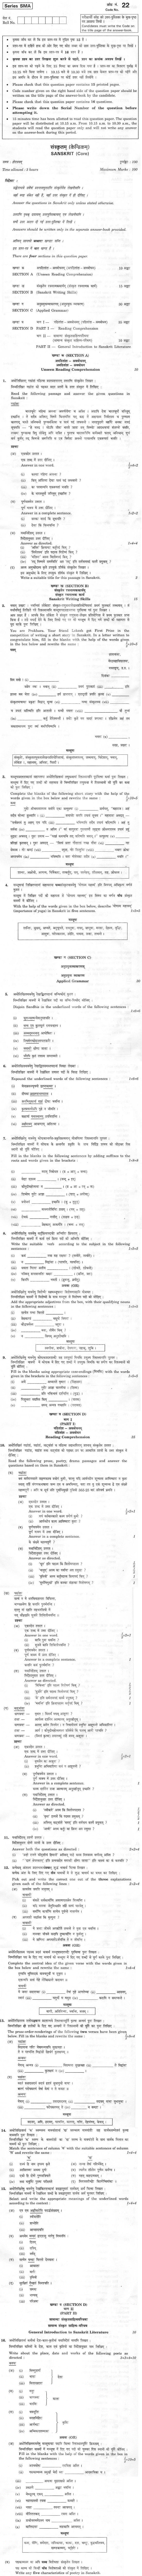 CBSE Class XII Previous Year Question Paper 2012 Sanskrit (Core)